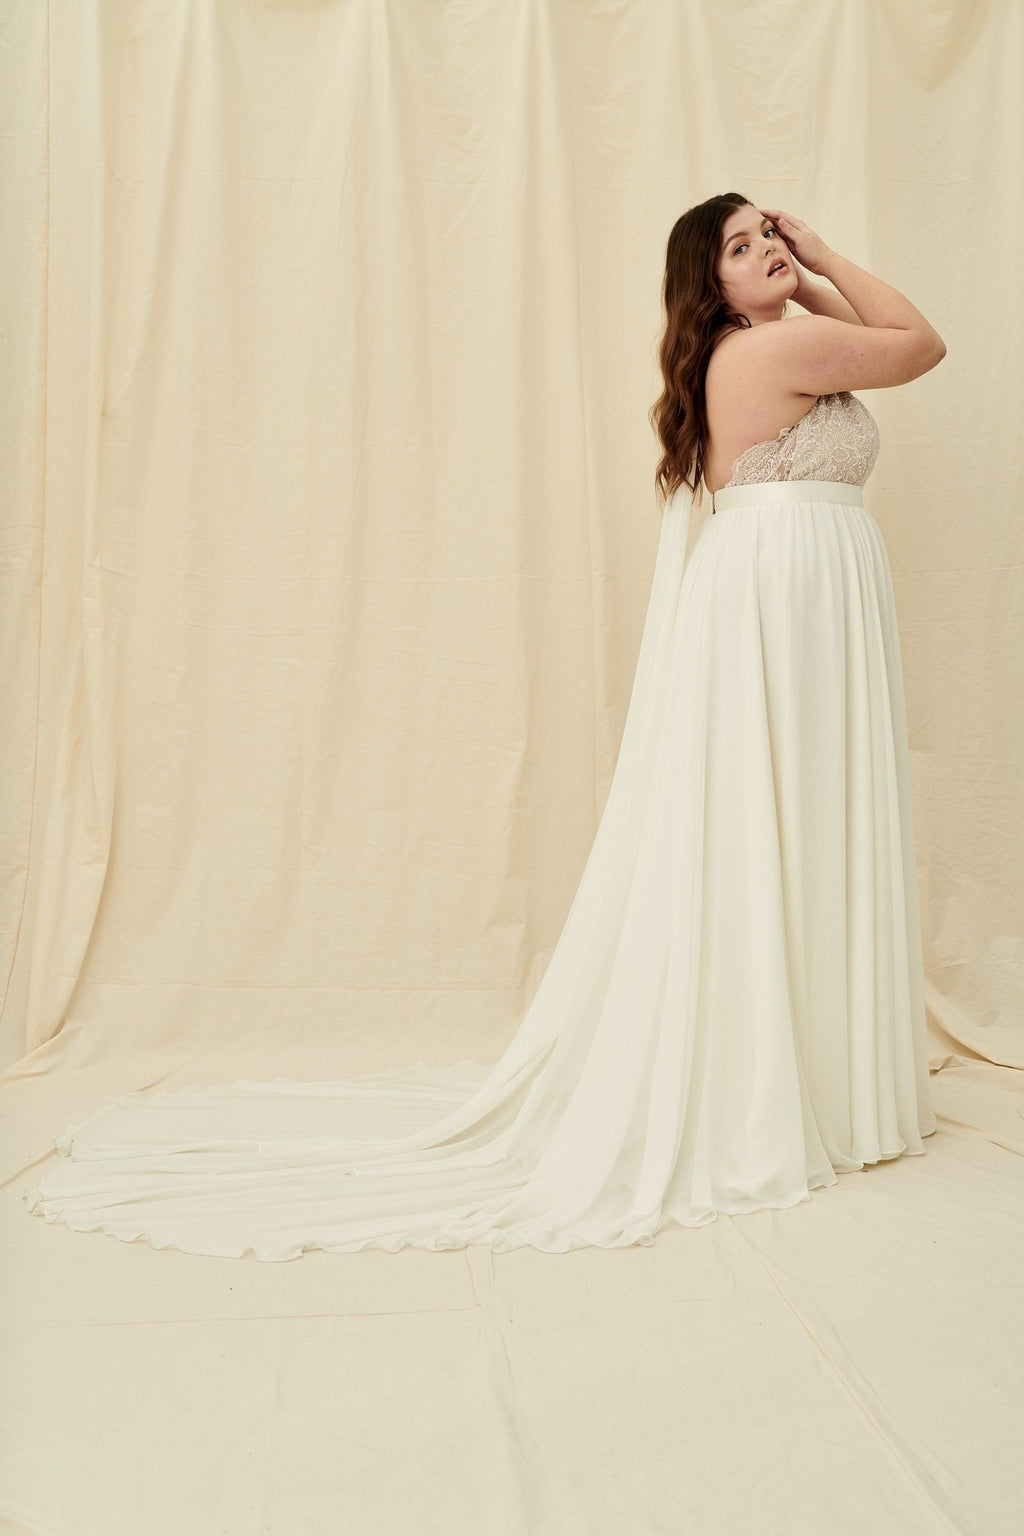 Plus size beaded halter top wedding dress with a flowy chiffon skirt